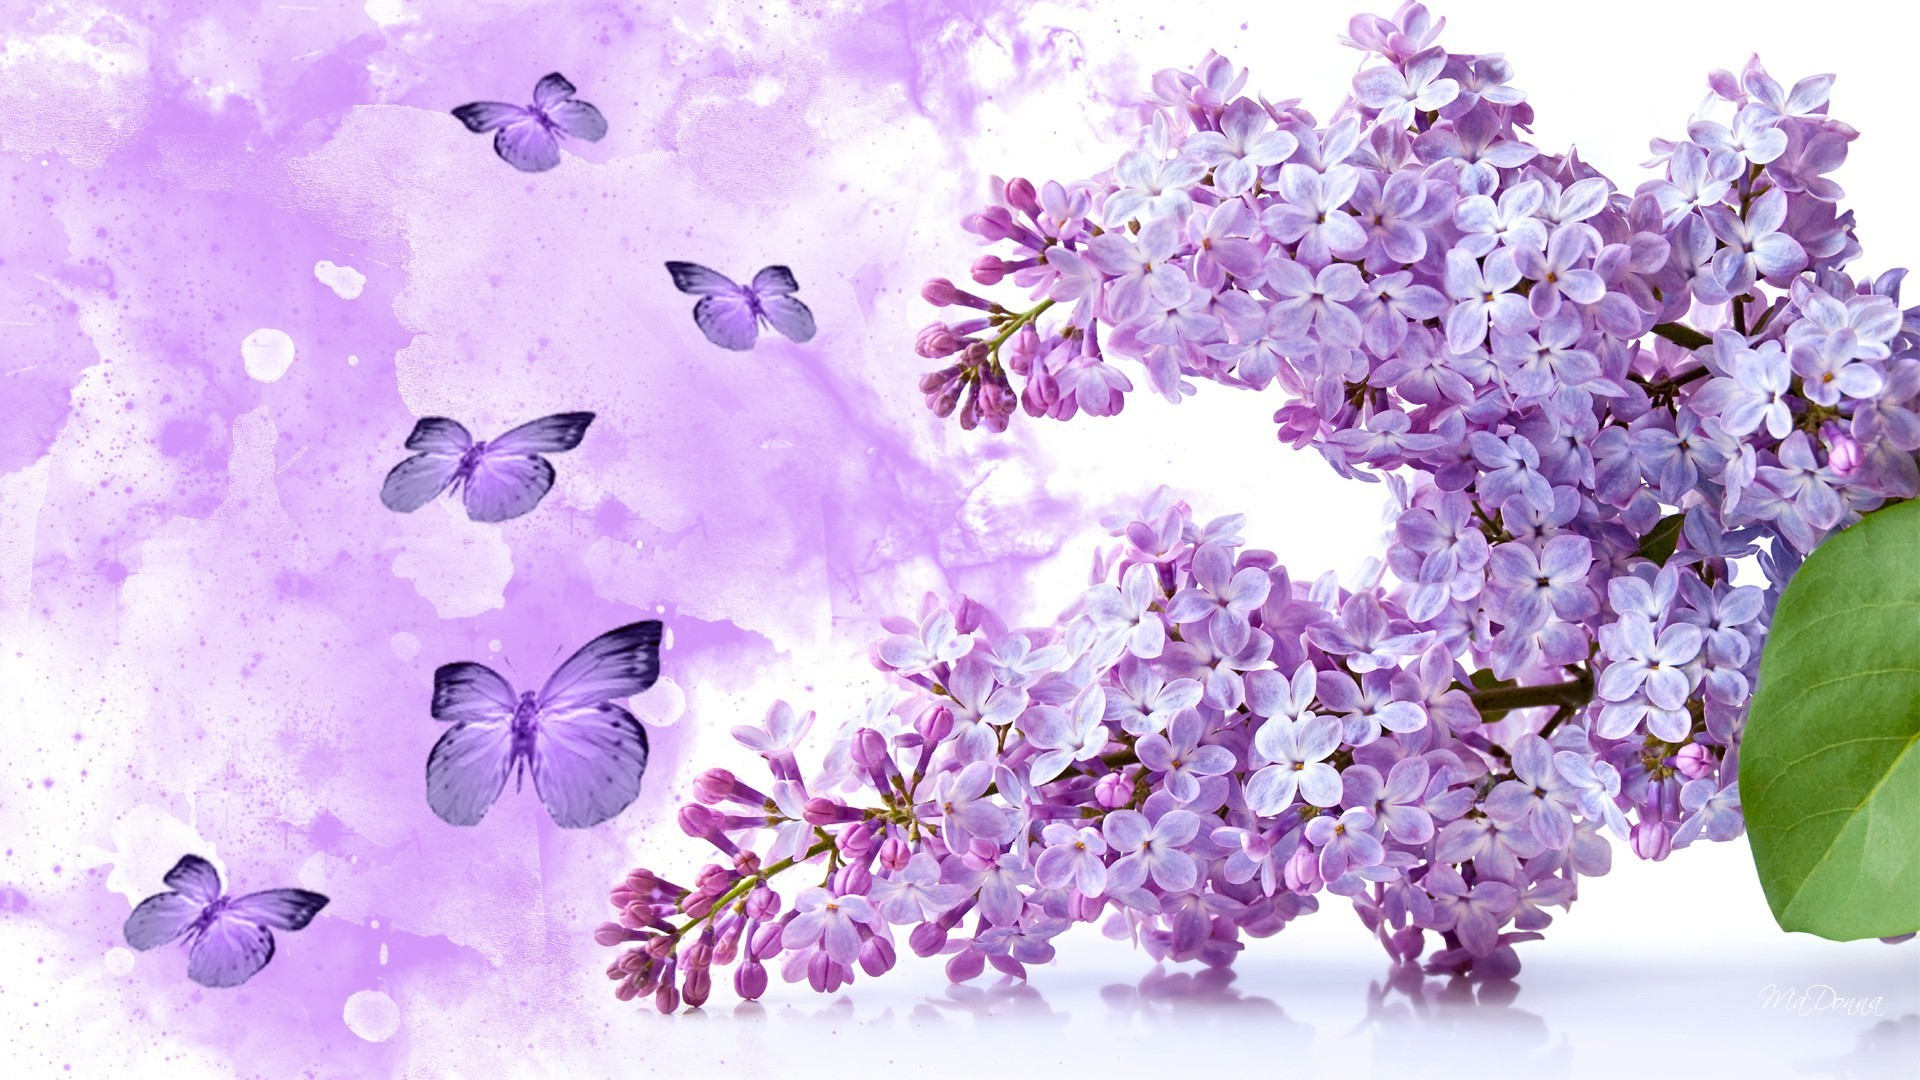 Beautiful butterflies and flowers wallpapers 56 images for Lilac butterfly wallpaper